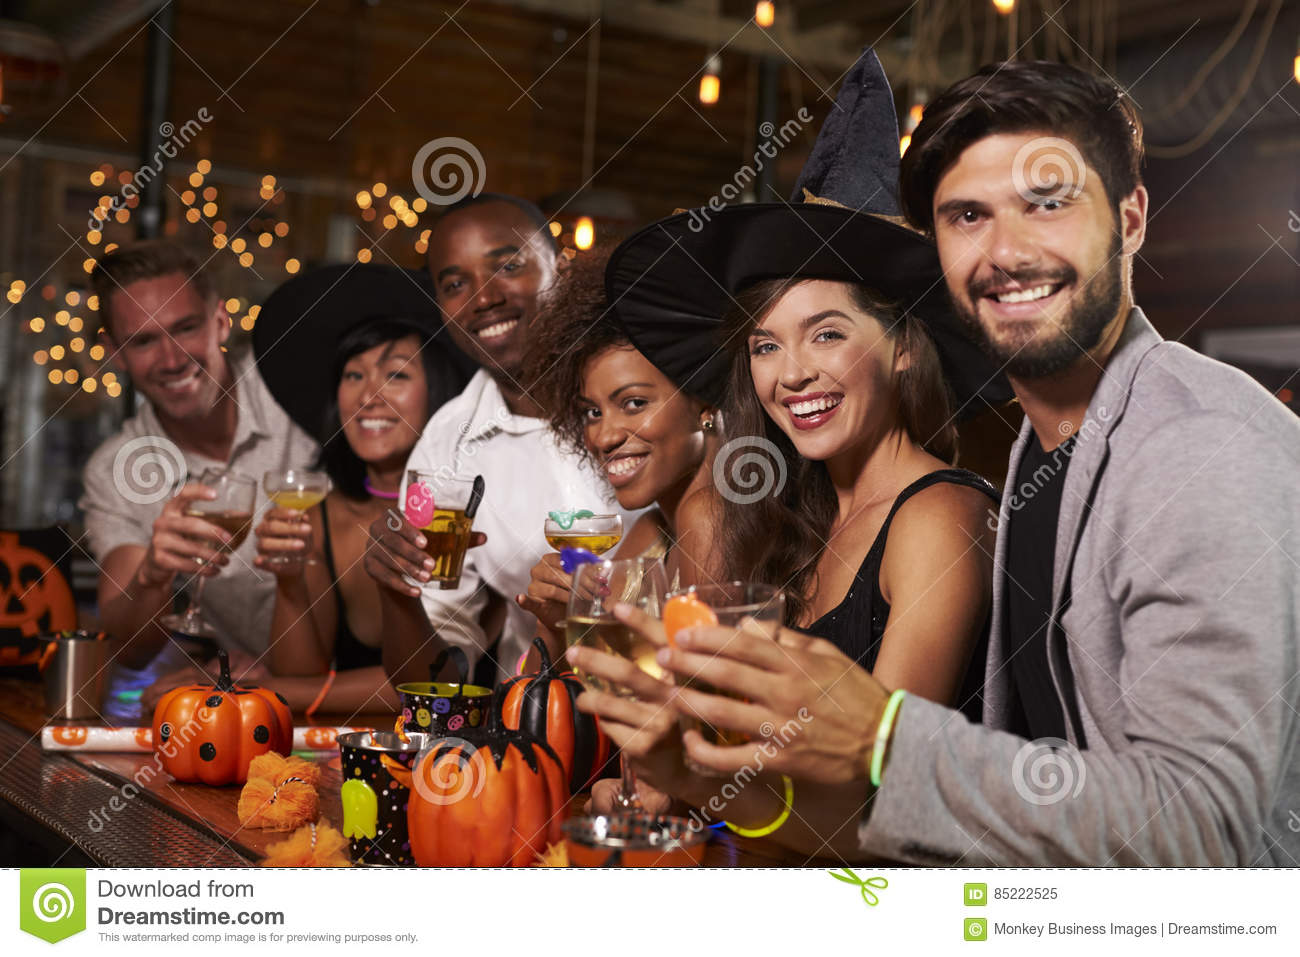 Friends enjoying a Halloween party at a bar look to camera